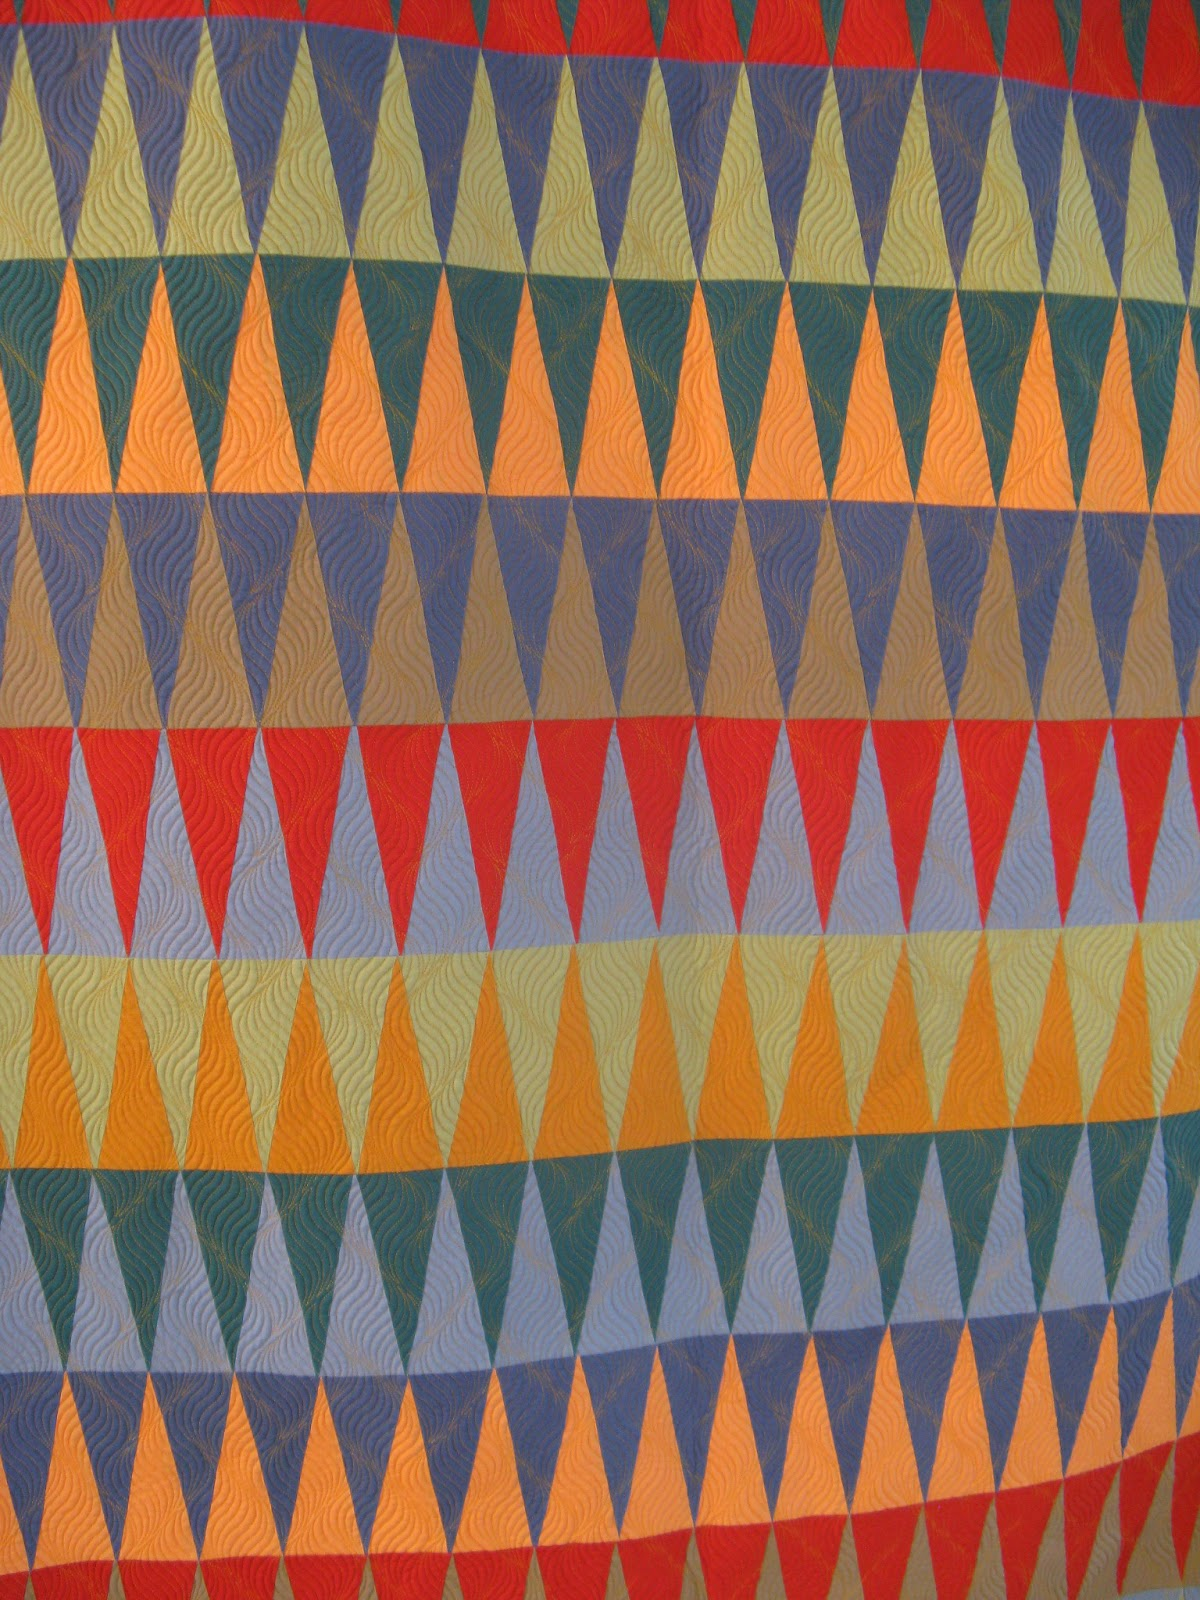 Indian Blanket Quilt Pattern | Triangles on a Roll : indian quilt pattern - Adamdwight.com